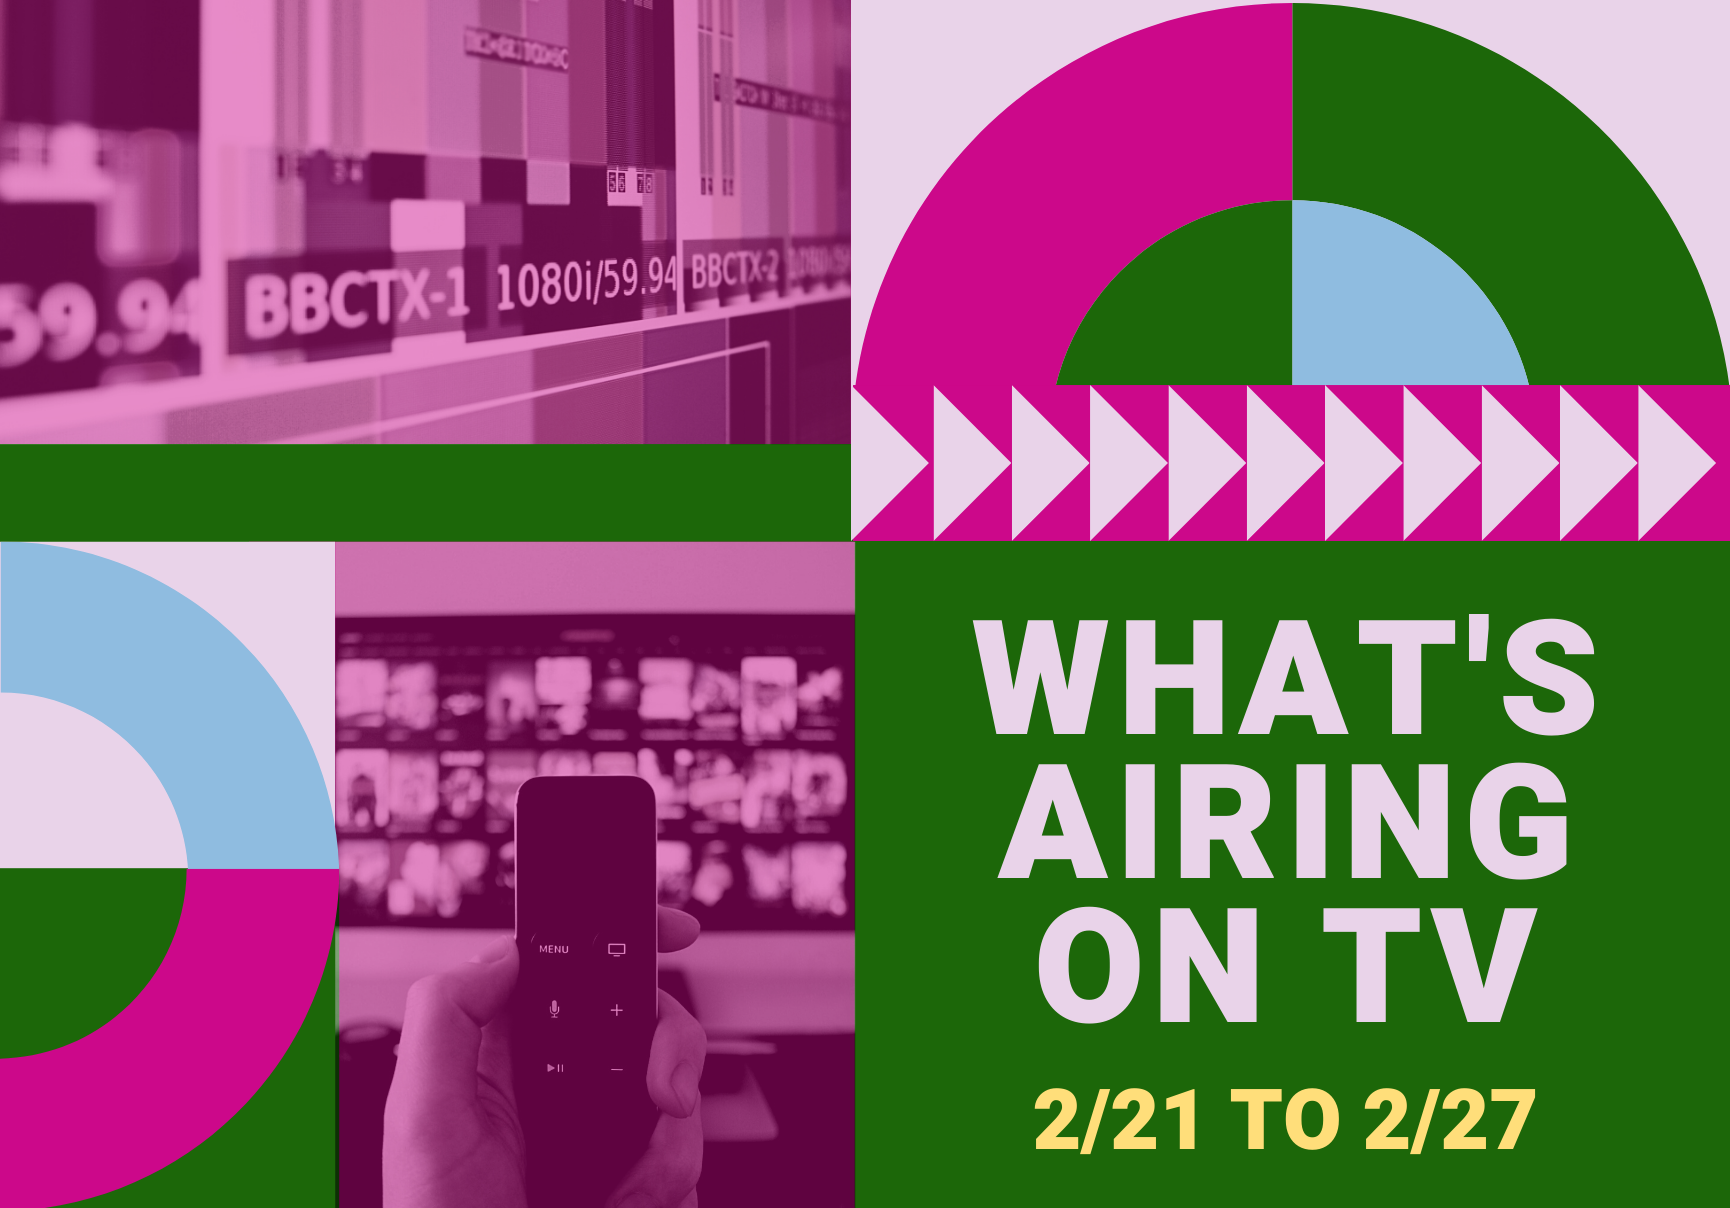 What's Airing This Week on TV - 2/21 to 2/27